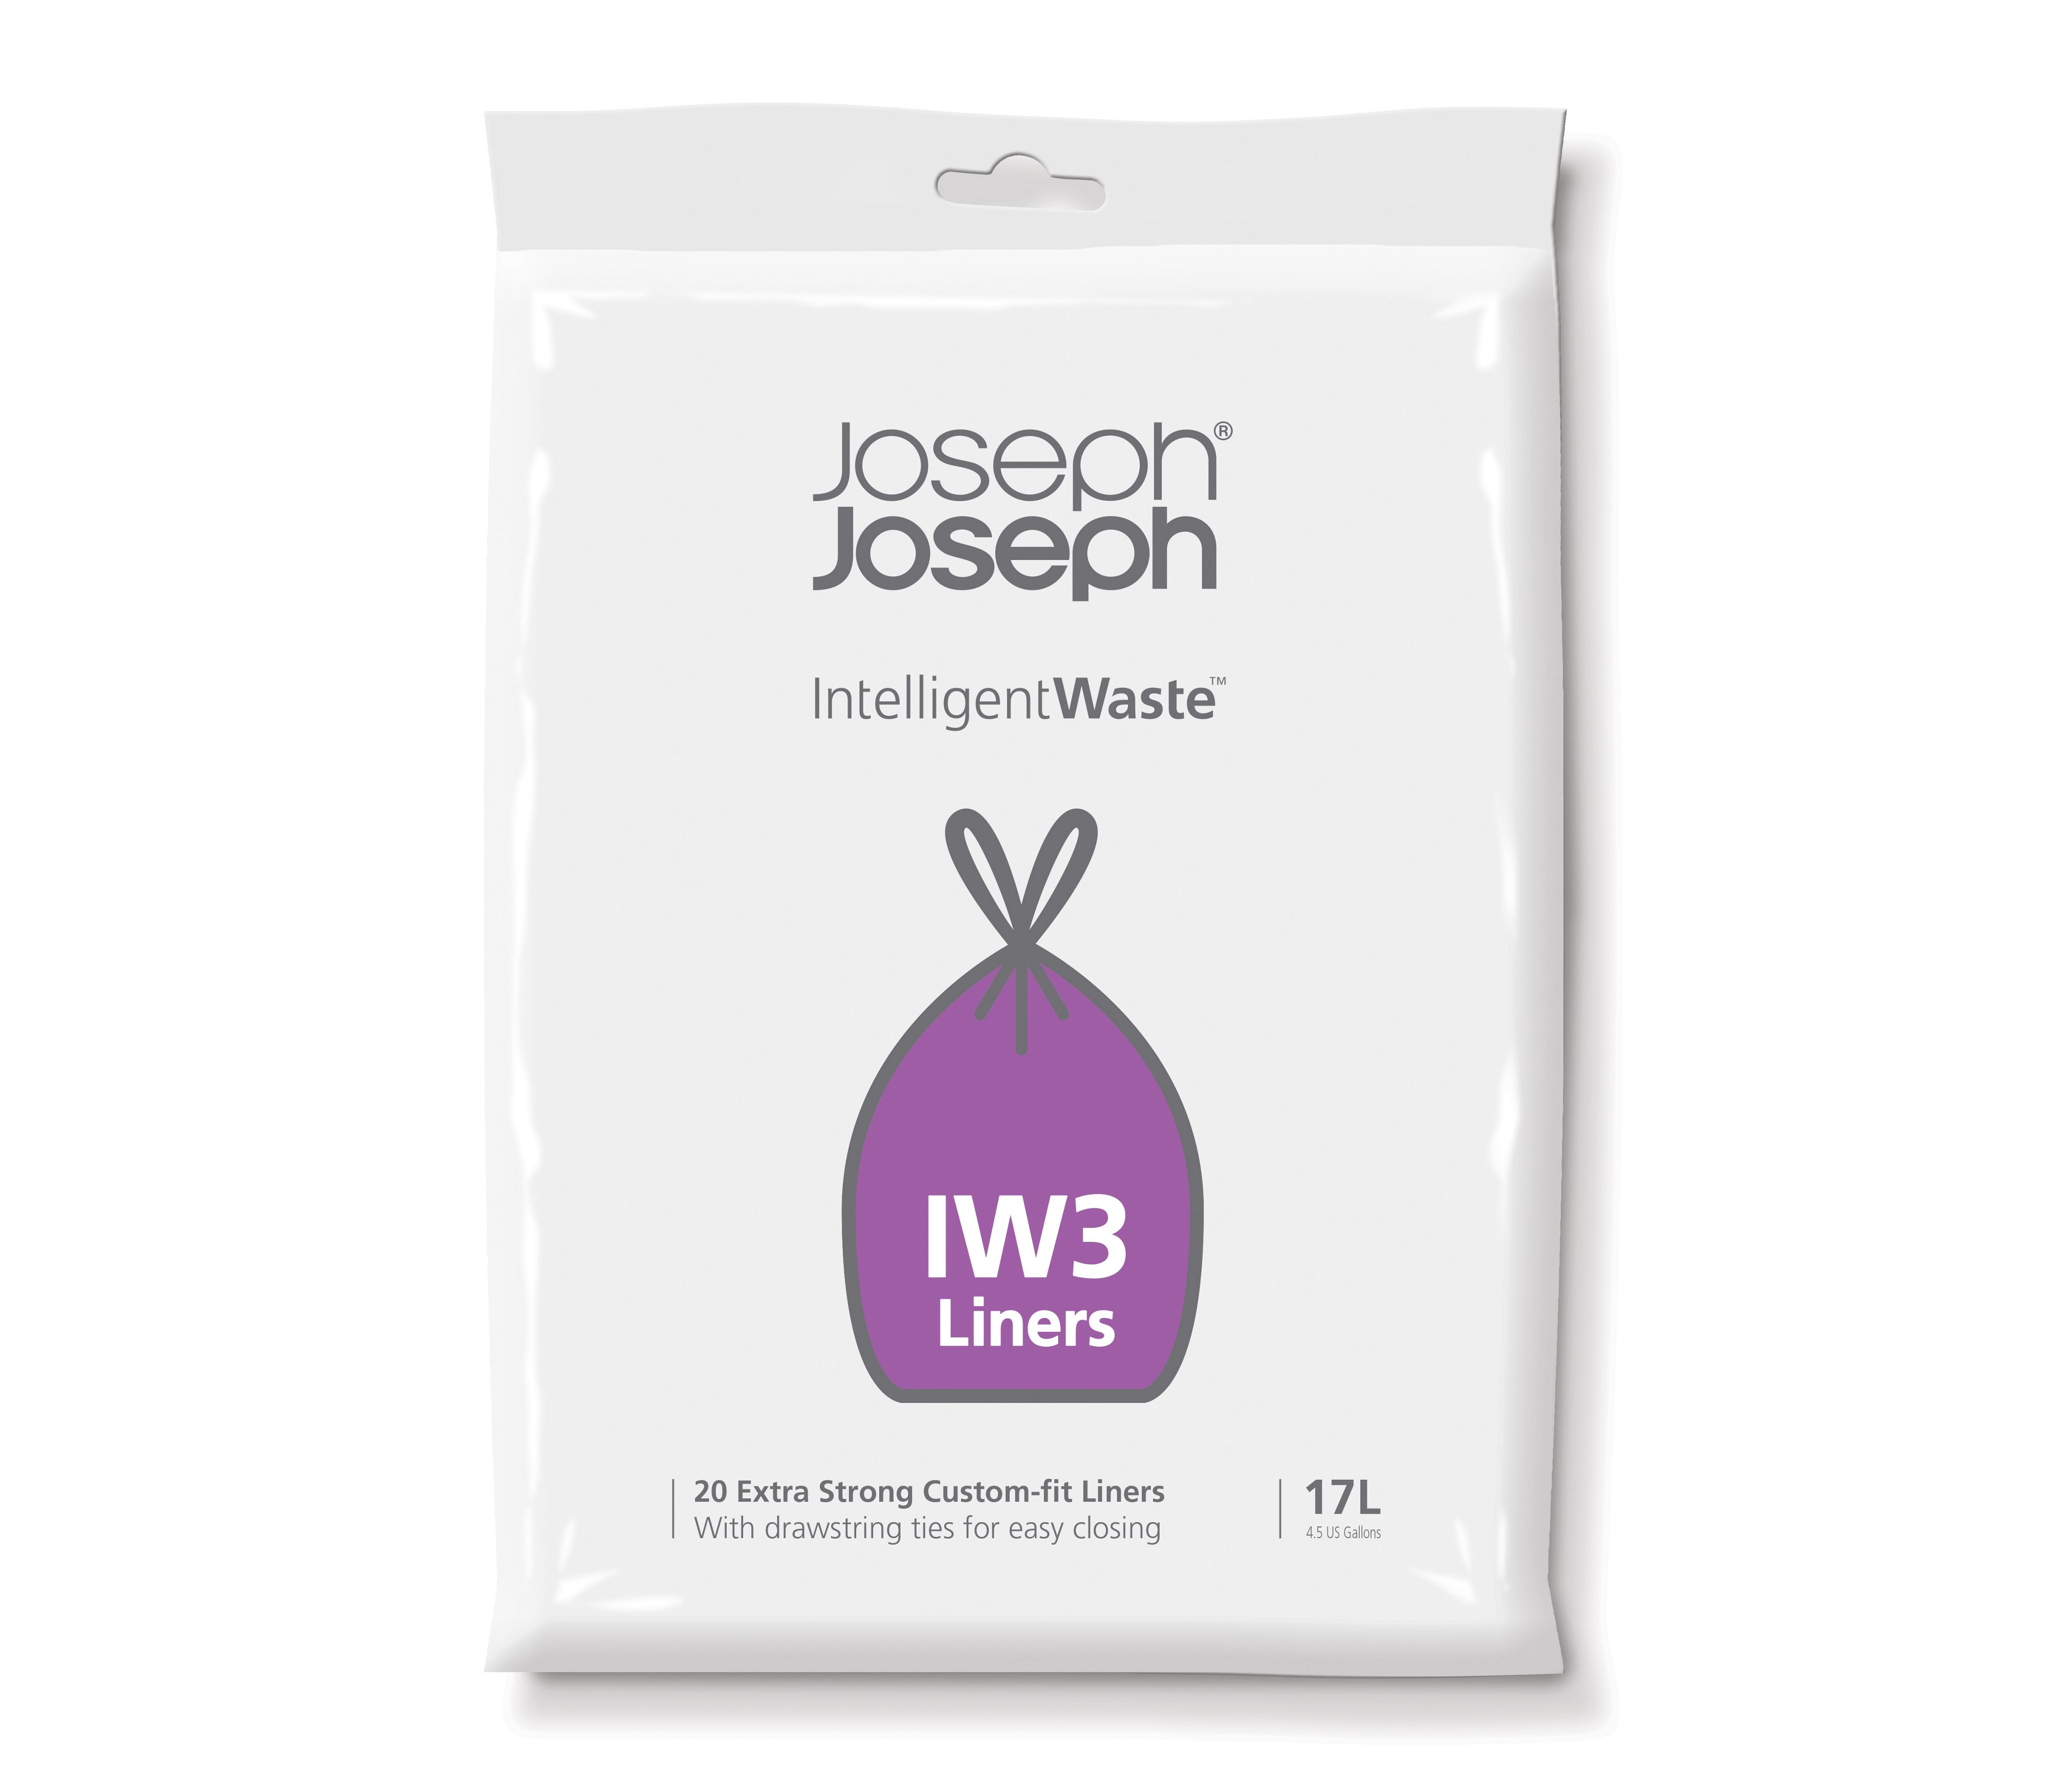 Image of Joseph Joseph 17L General Intelligent Waste bin liners -20 Pack